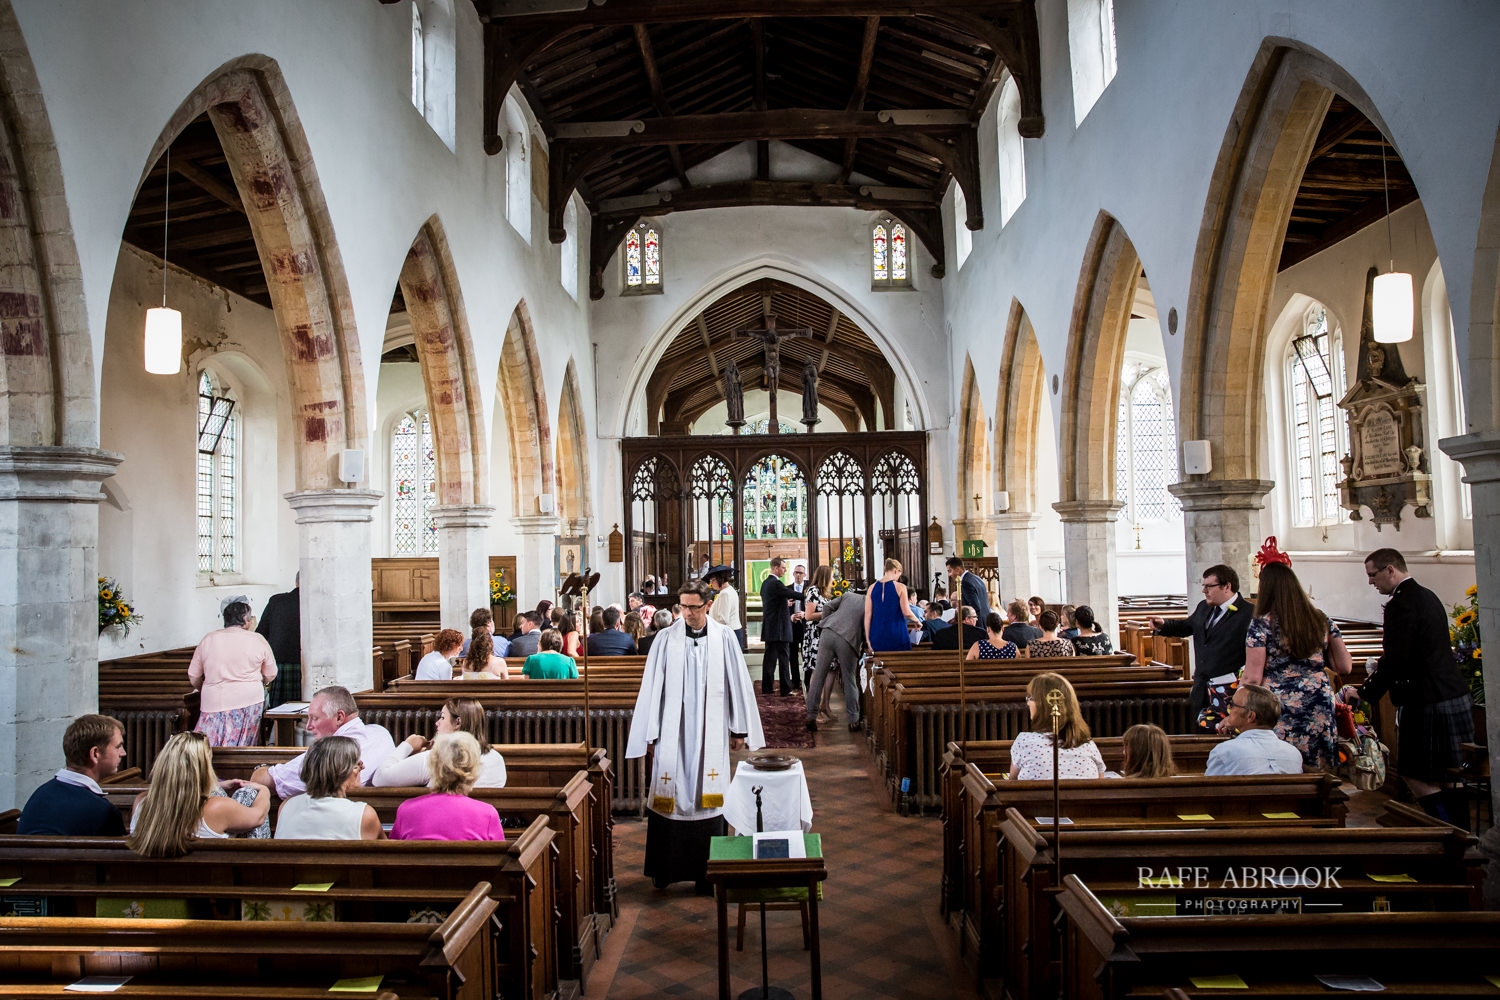 minstrel court wedding royston cambridge hertfordshire wedding photographer-1105.jpg